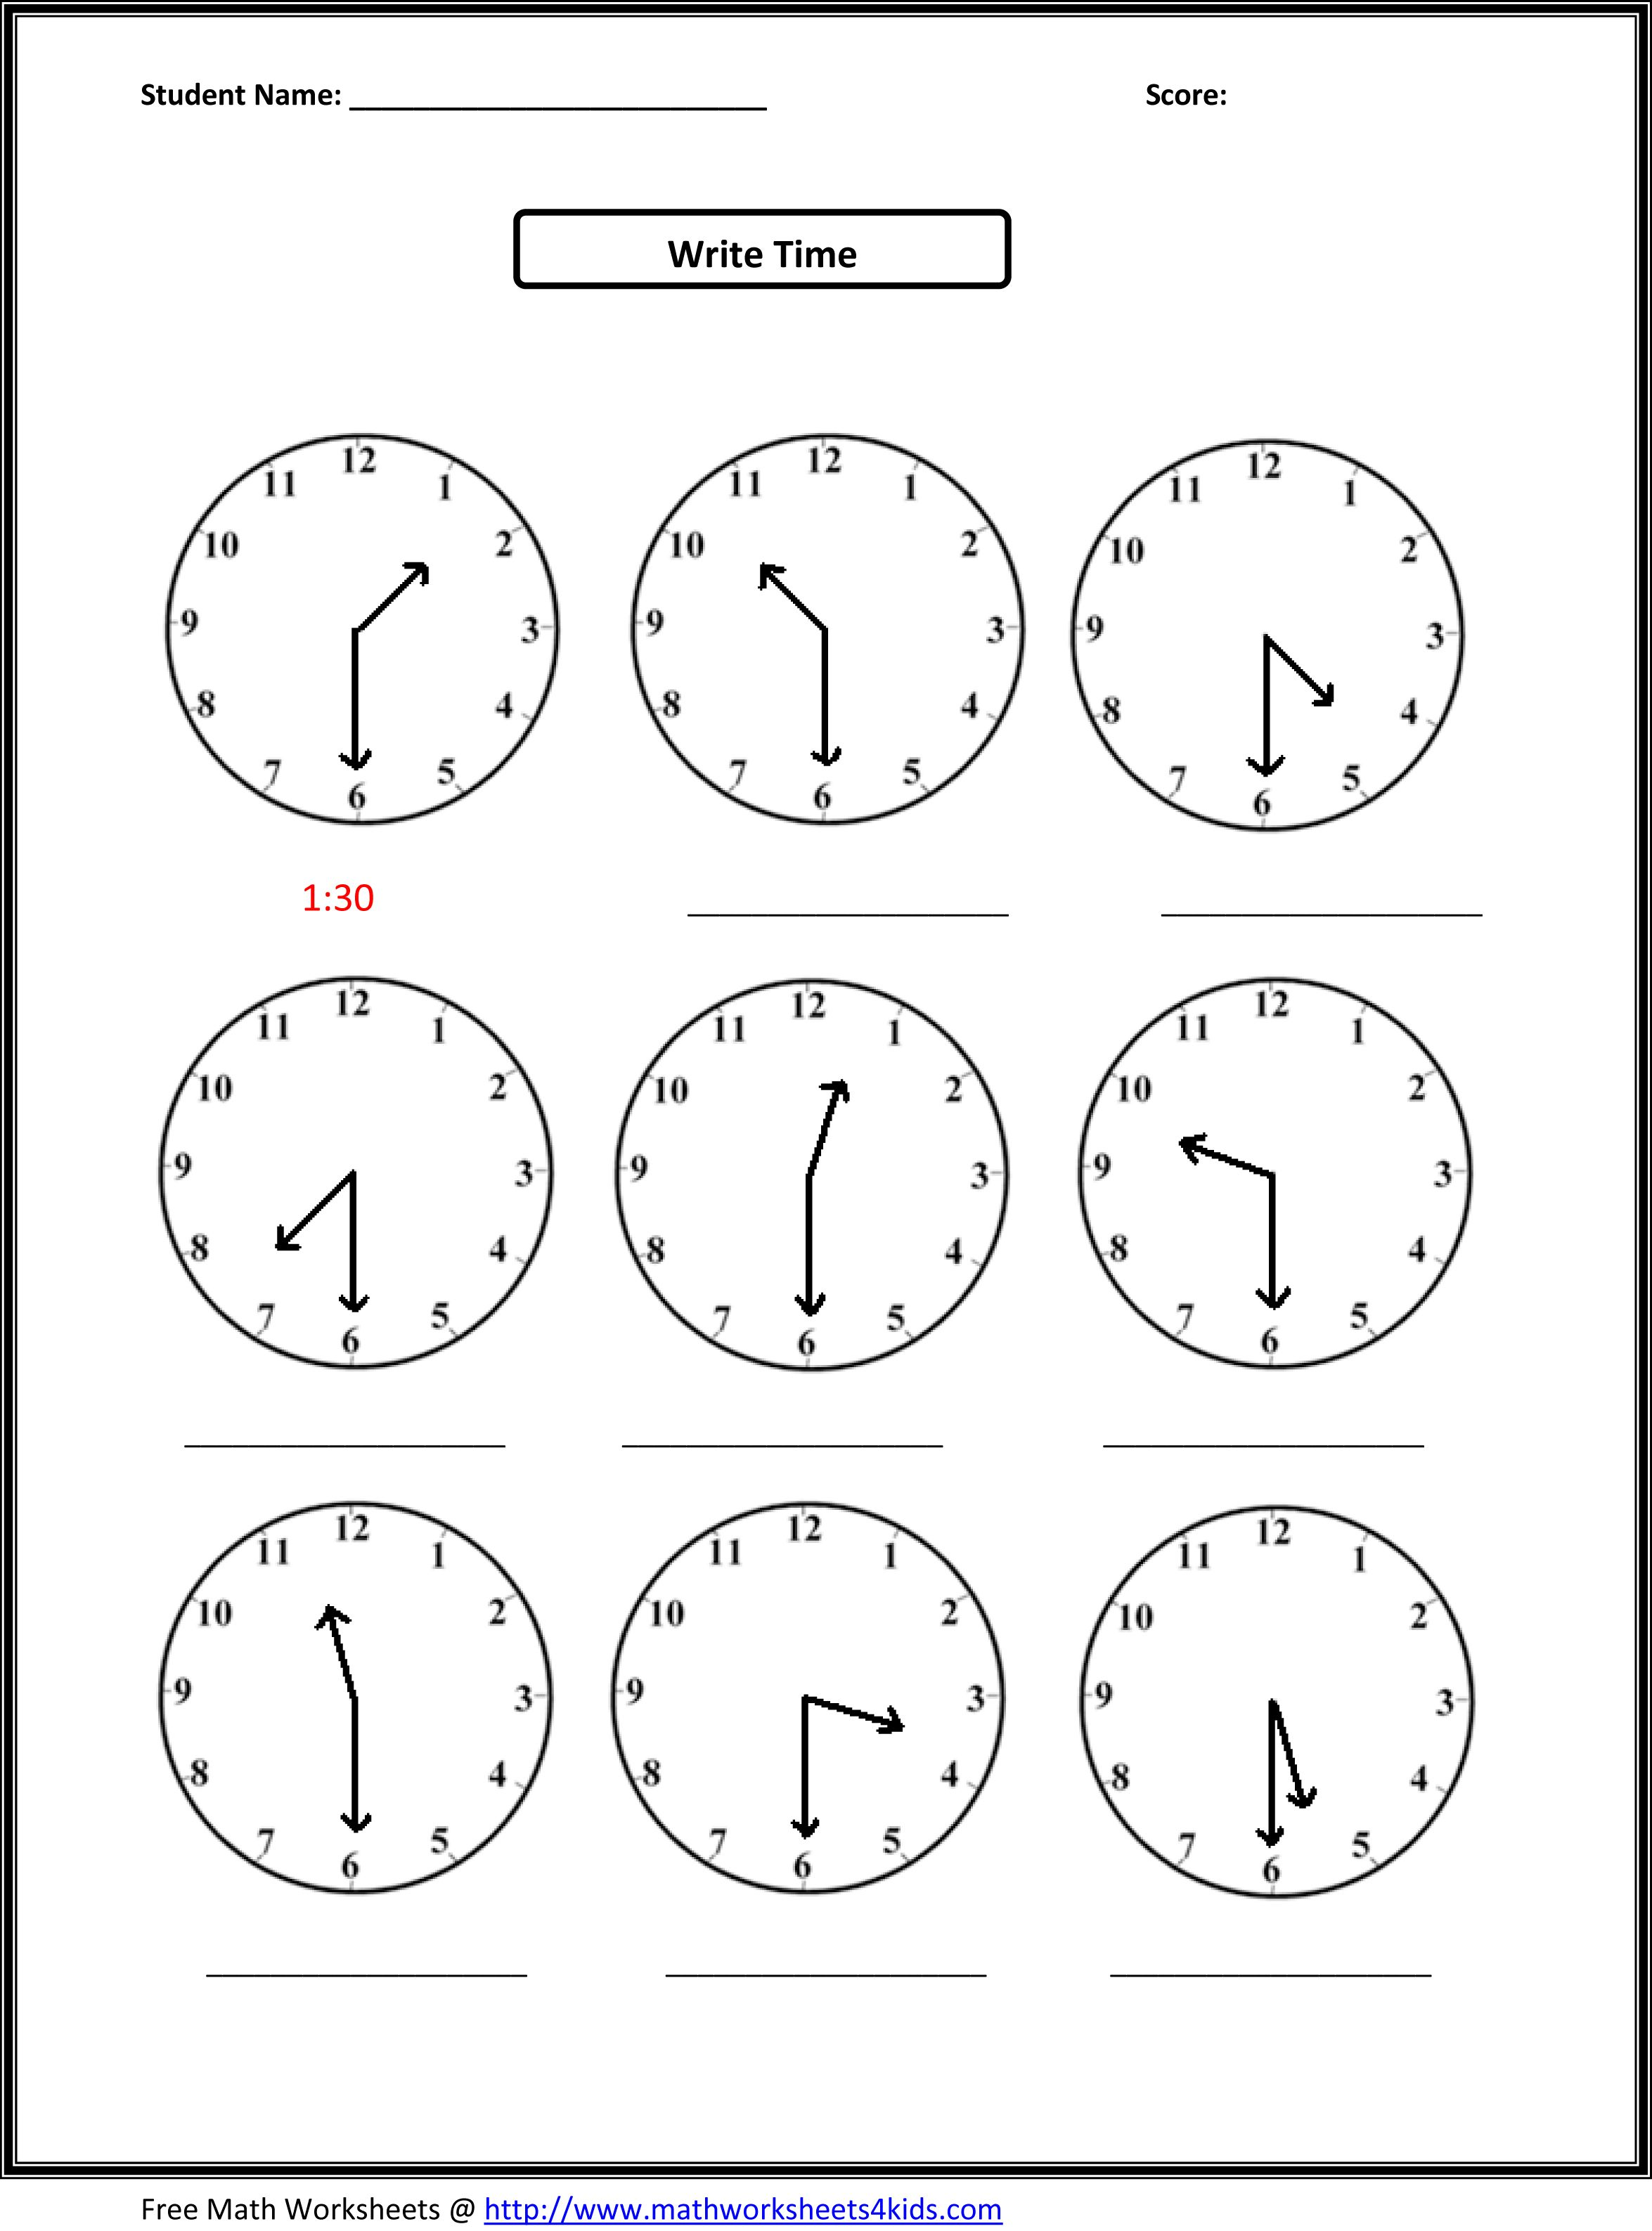 Weirdmailus  Marvellous Worksheet On Time For Grade   Reocurent With Handsome Free Printable Telling Time Worksheets Nd Grade  Reocurent With Delectable Division With Decimals Worksheets Printable Also Inference Worksheets Grade  In Addition Science Starters Worksheet And Observation And Inference Worksheets As Well As Free Printable Fact And Opinion Worksheets Additionally Free Printable Alphabetical Order Worksheets From Reocurentcom With Weirdmailus  Handsome Worksheet On Time For Grade   Reocurent With Delectable Free Printable Telling Time Worksheets Nd Grade  Reocurent And Marvellous Division With Decimals Worksheets Printable Also Inference Worksheets Grade  In Addition Science Starters Worksheet From Reocurentcom